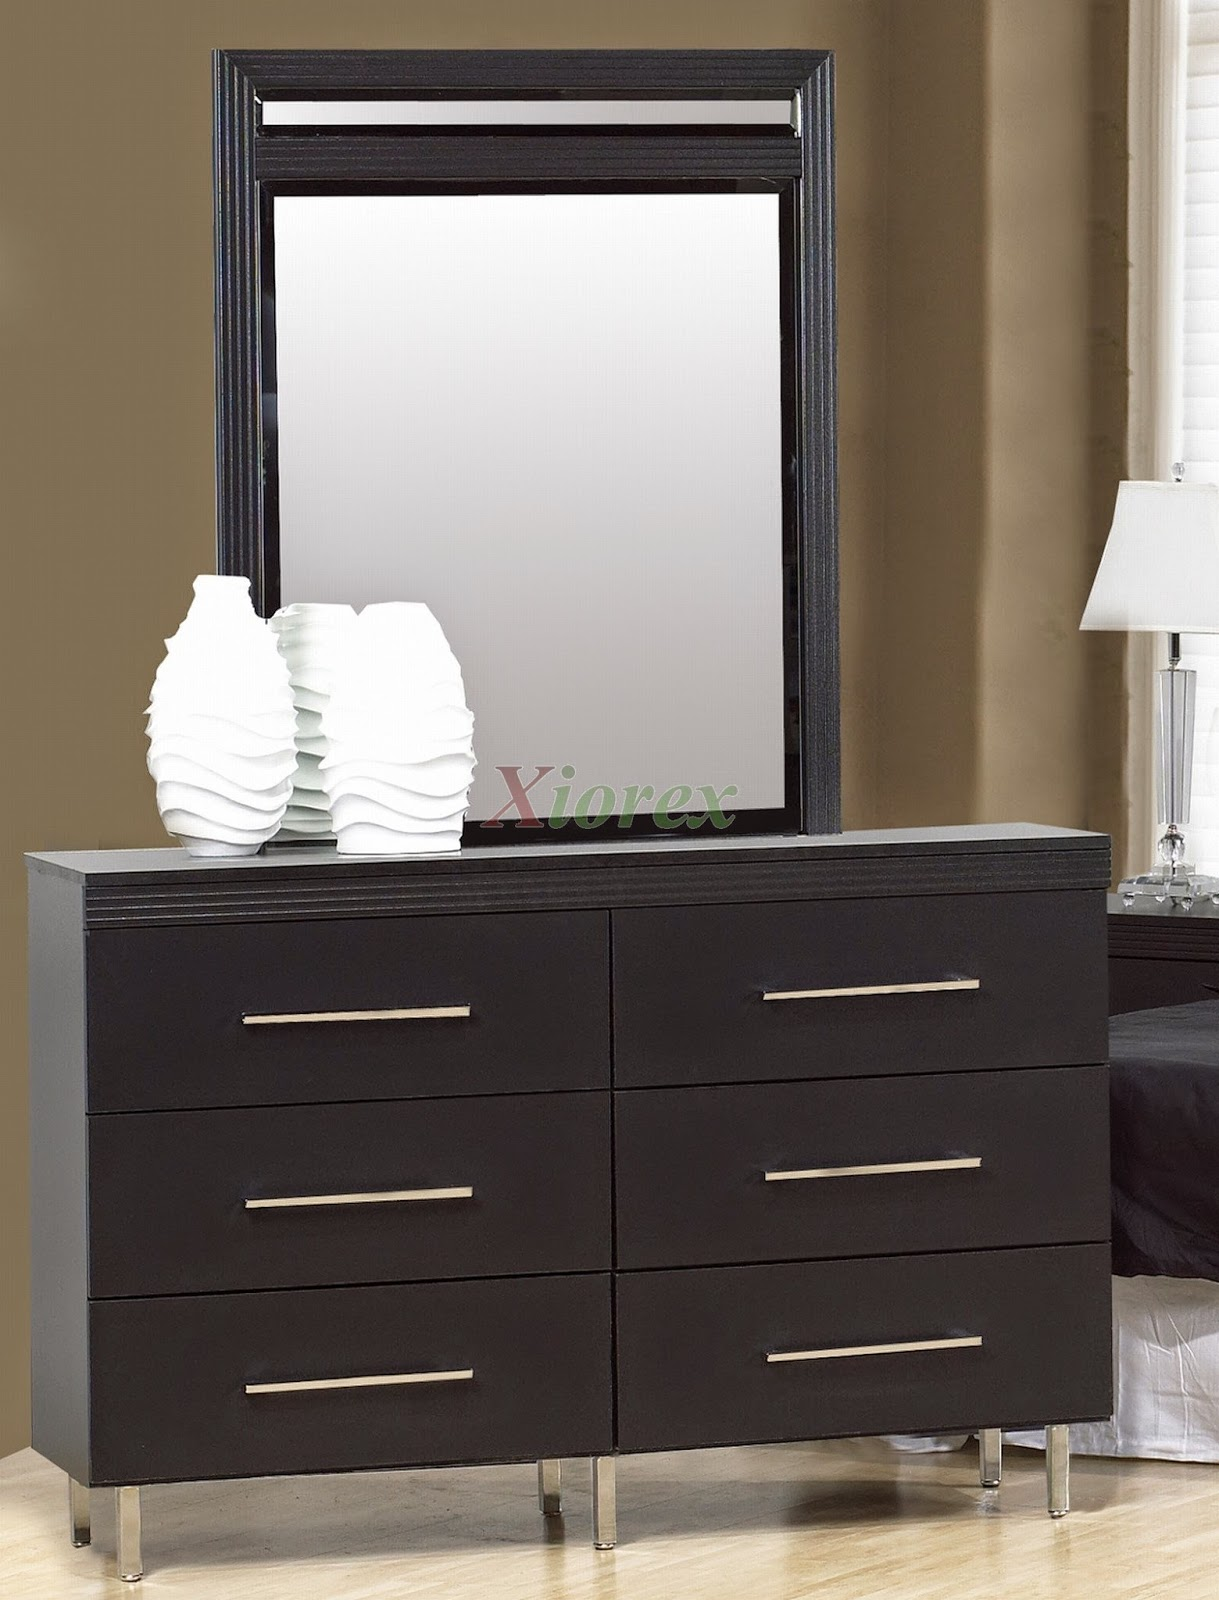 a dresser cool comes sets set furniture many expensive bedroom that cheap is less option design ensures stores at home black style consistent which in